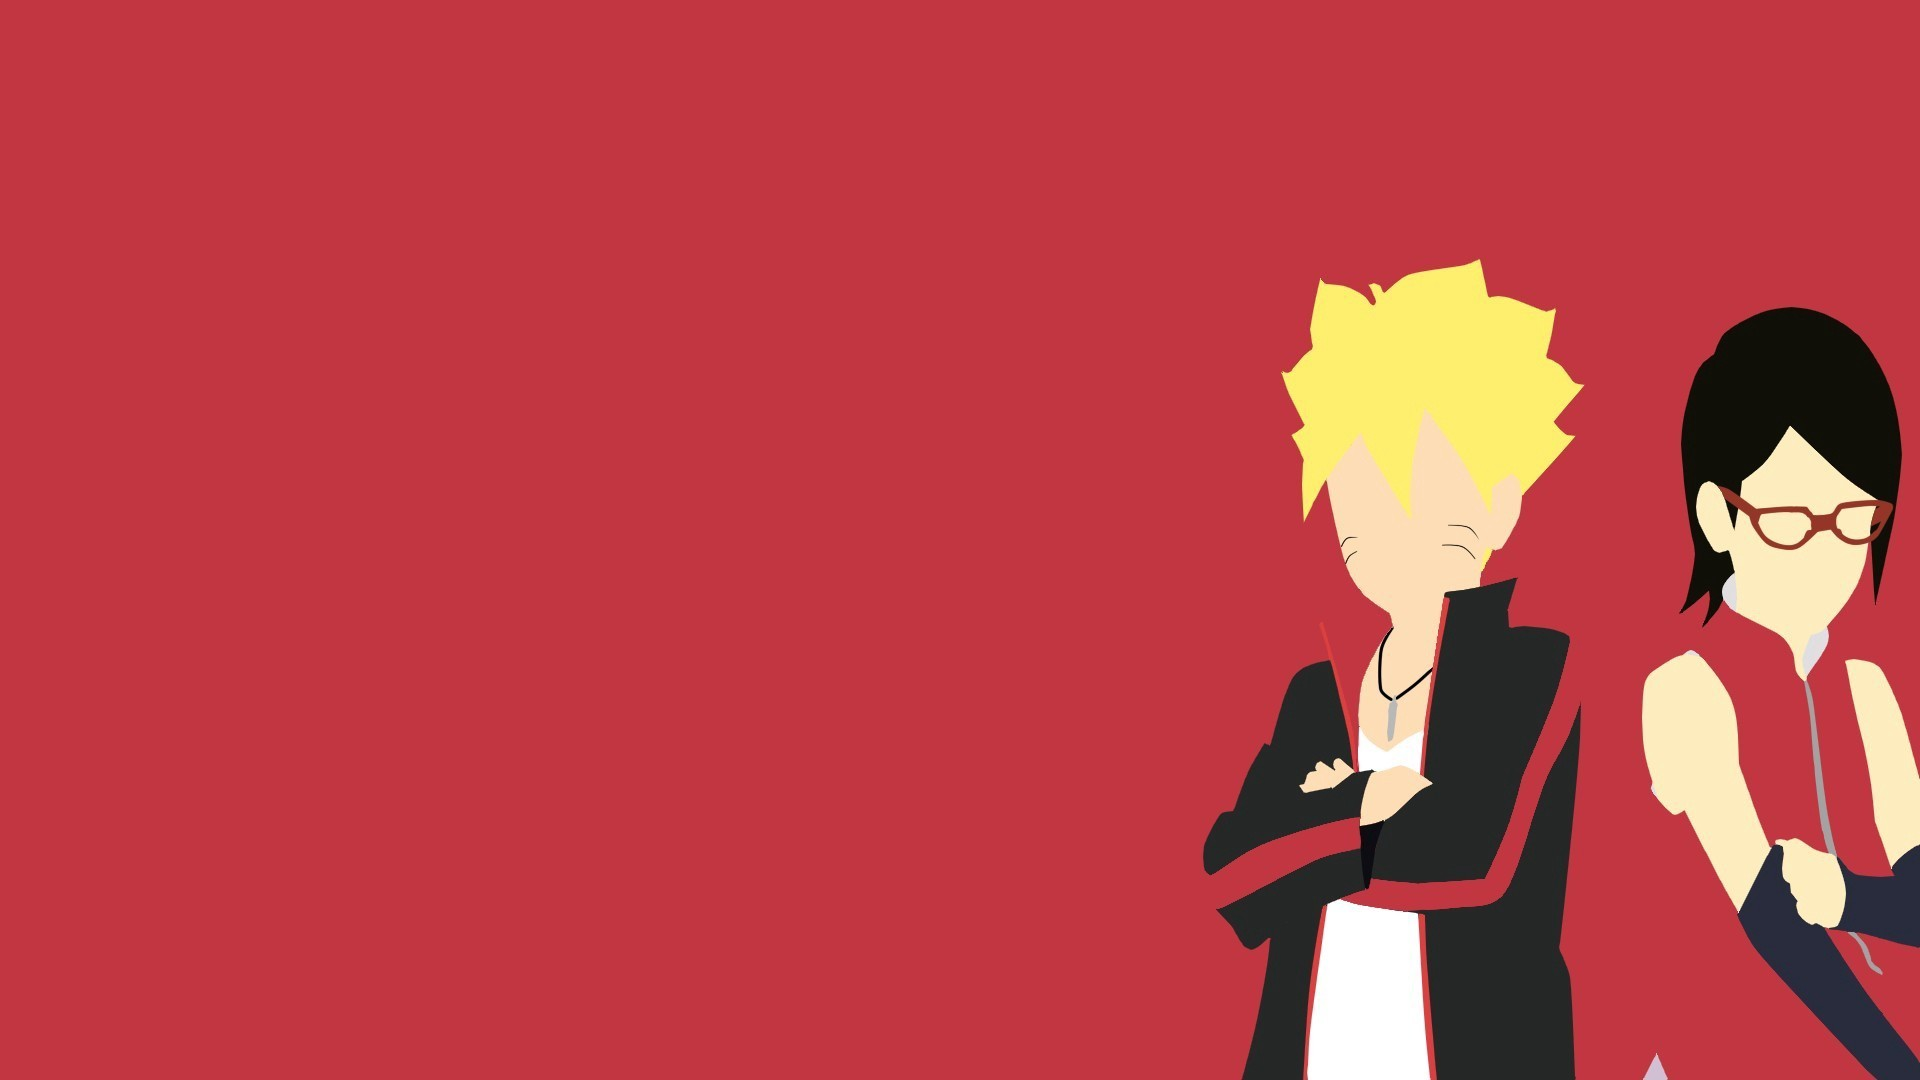 1920x1080 Anime - Boruto: Naruto the Movie Naruto Boruto Uzumaki Sarada Uchiha  Bakgrund